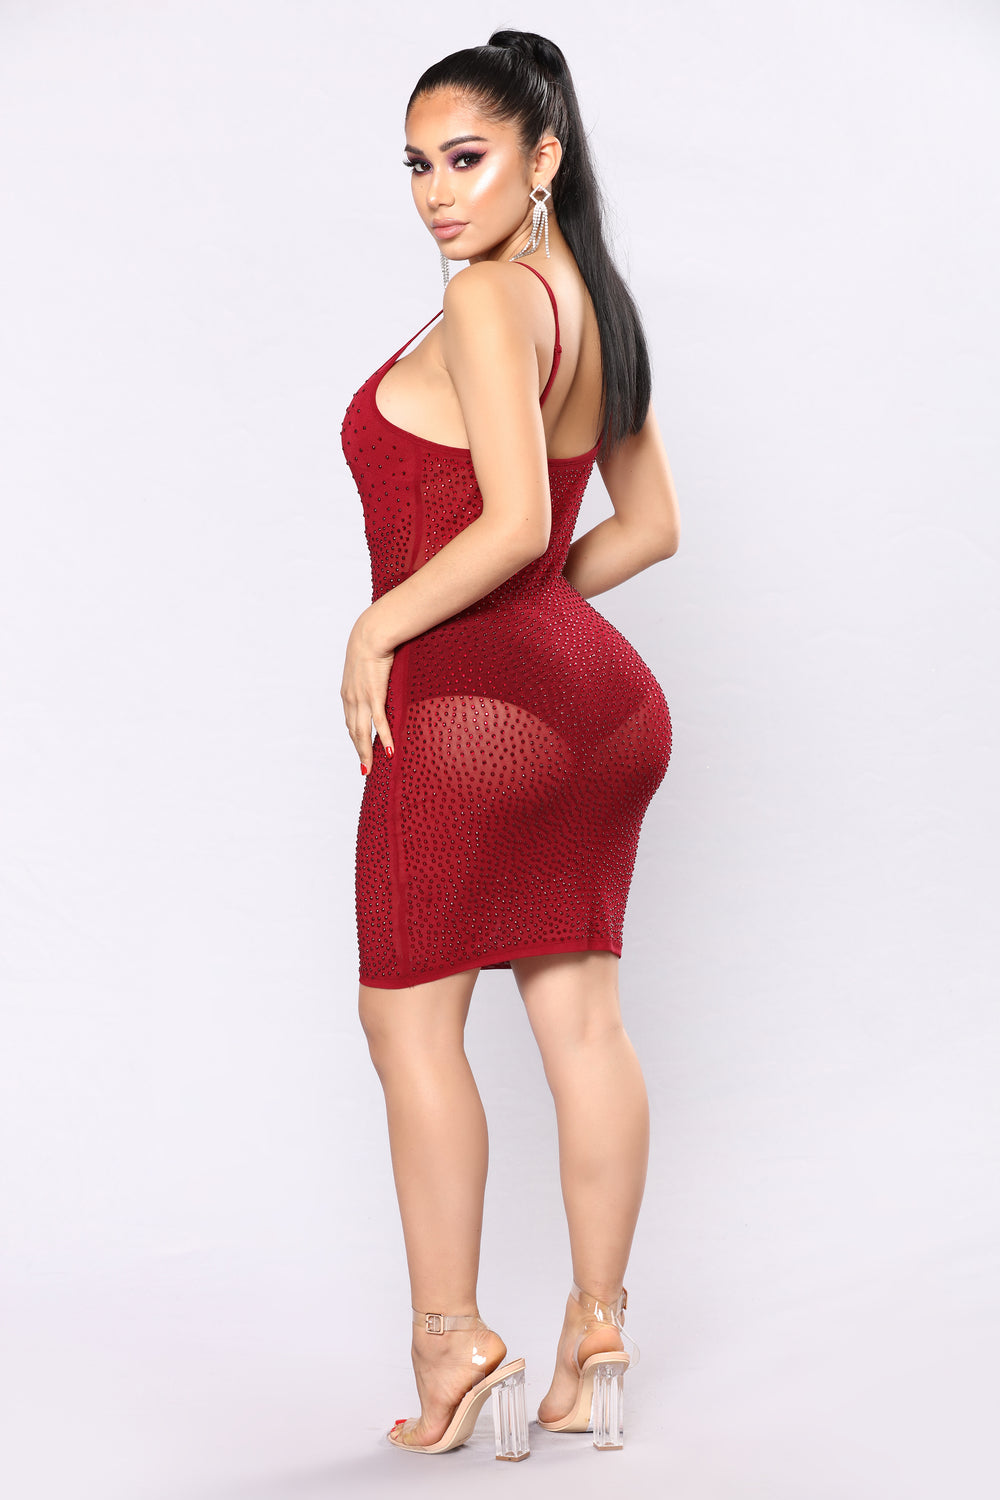 Have A Drink Rhinestone Dress - Burgundy